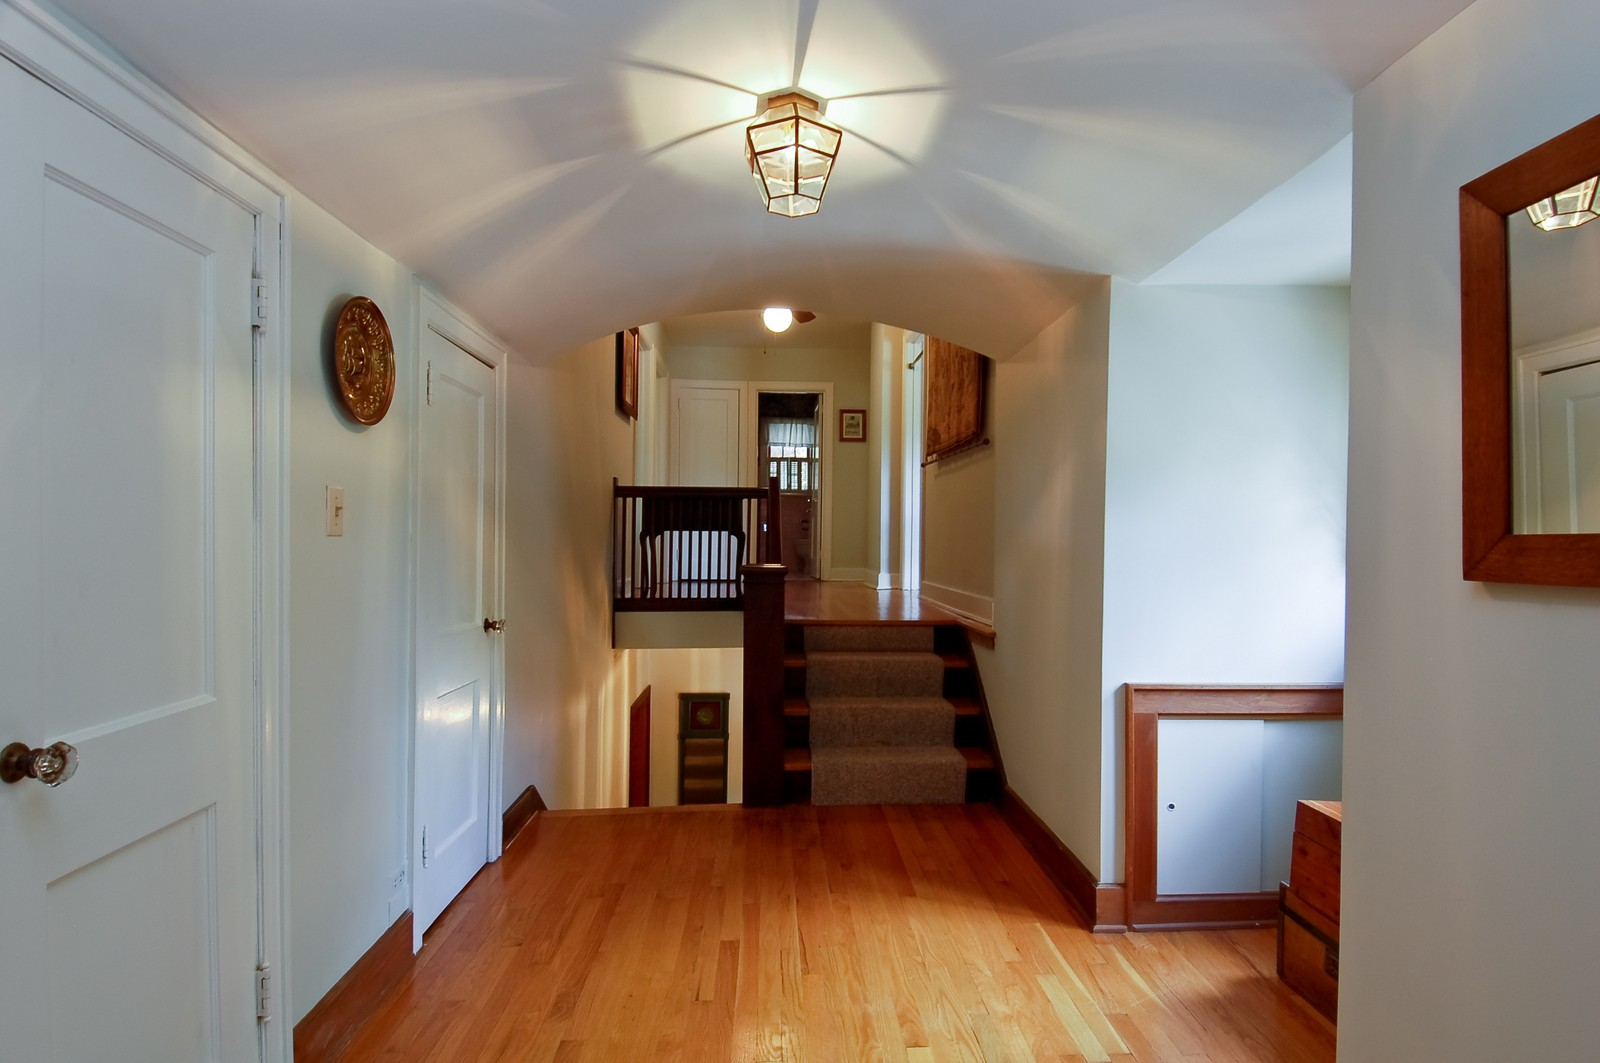 Real Estate Photography - 4325 Central Ave, Western Springs, IL, 60558 - Hallway